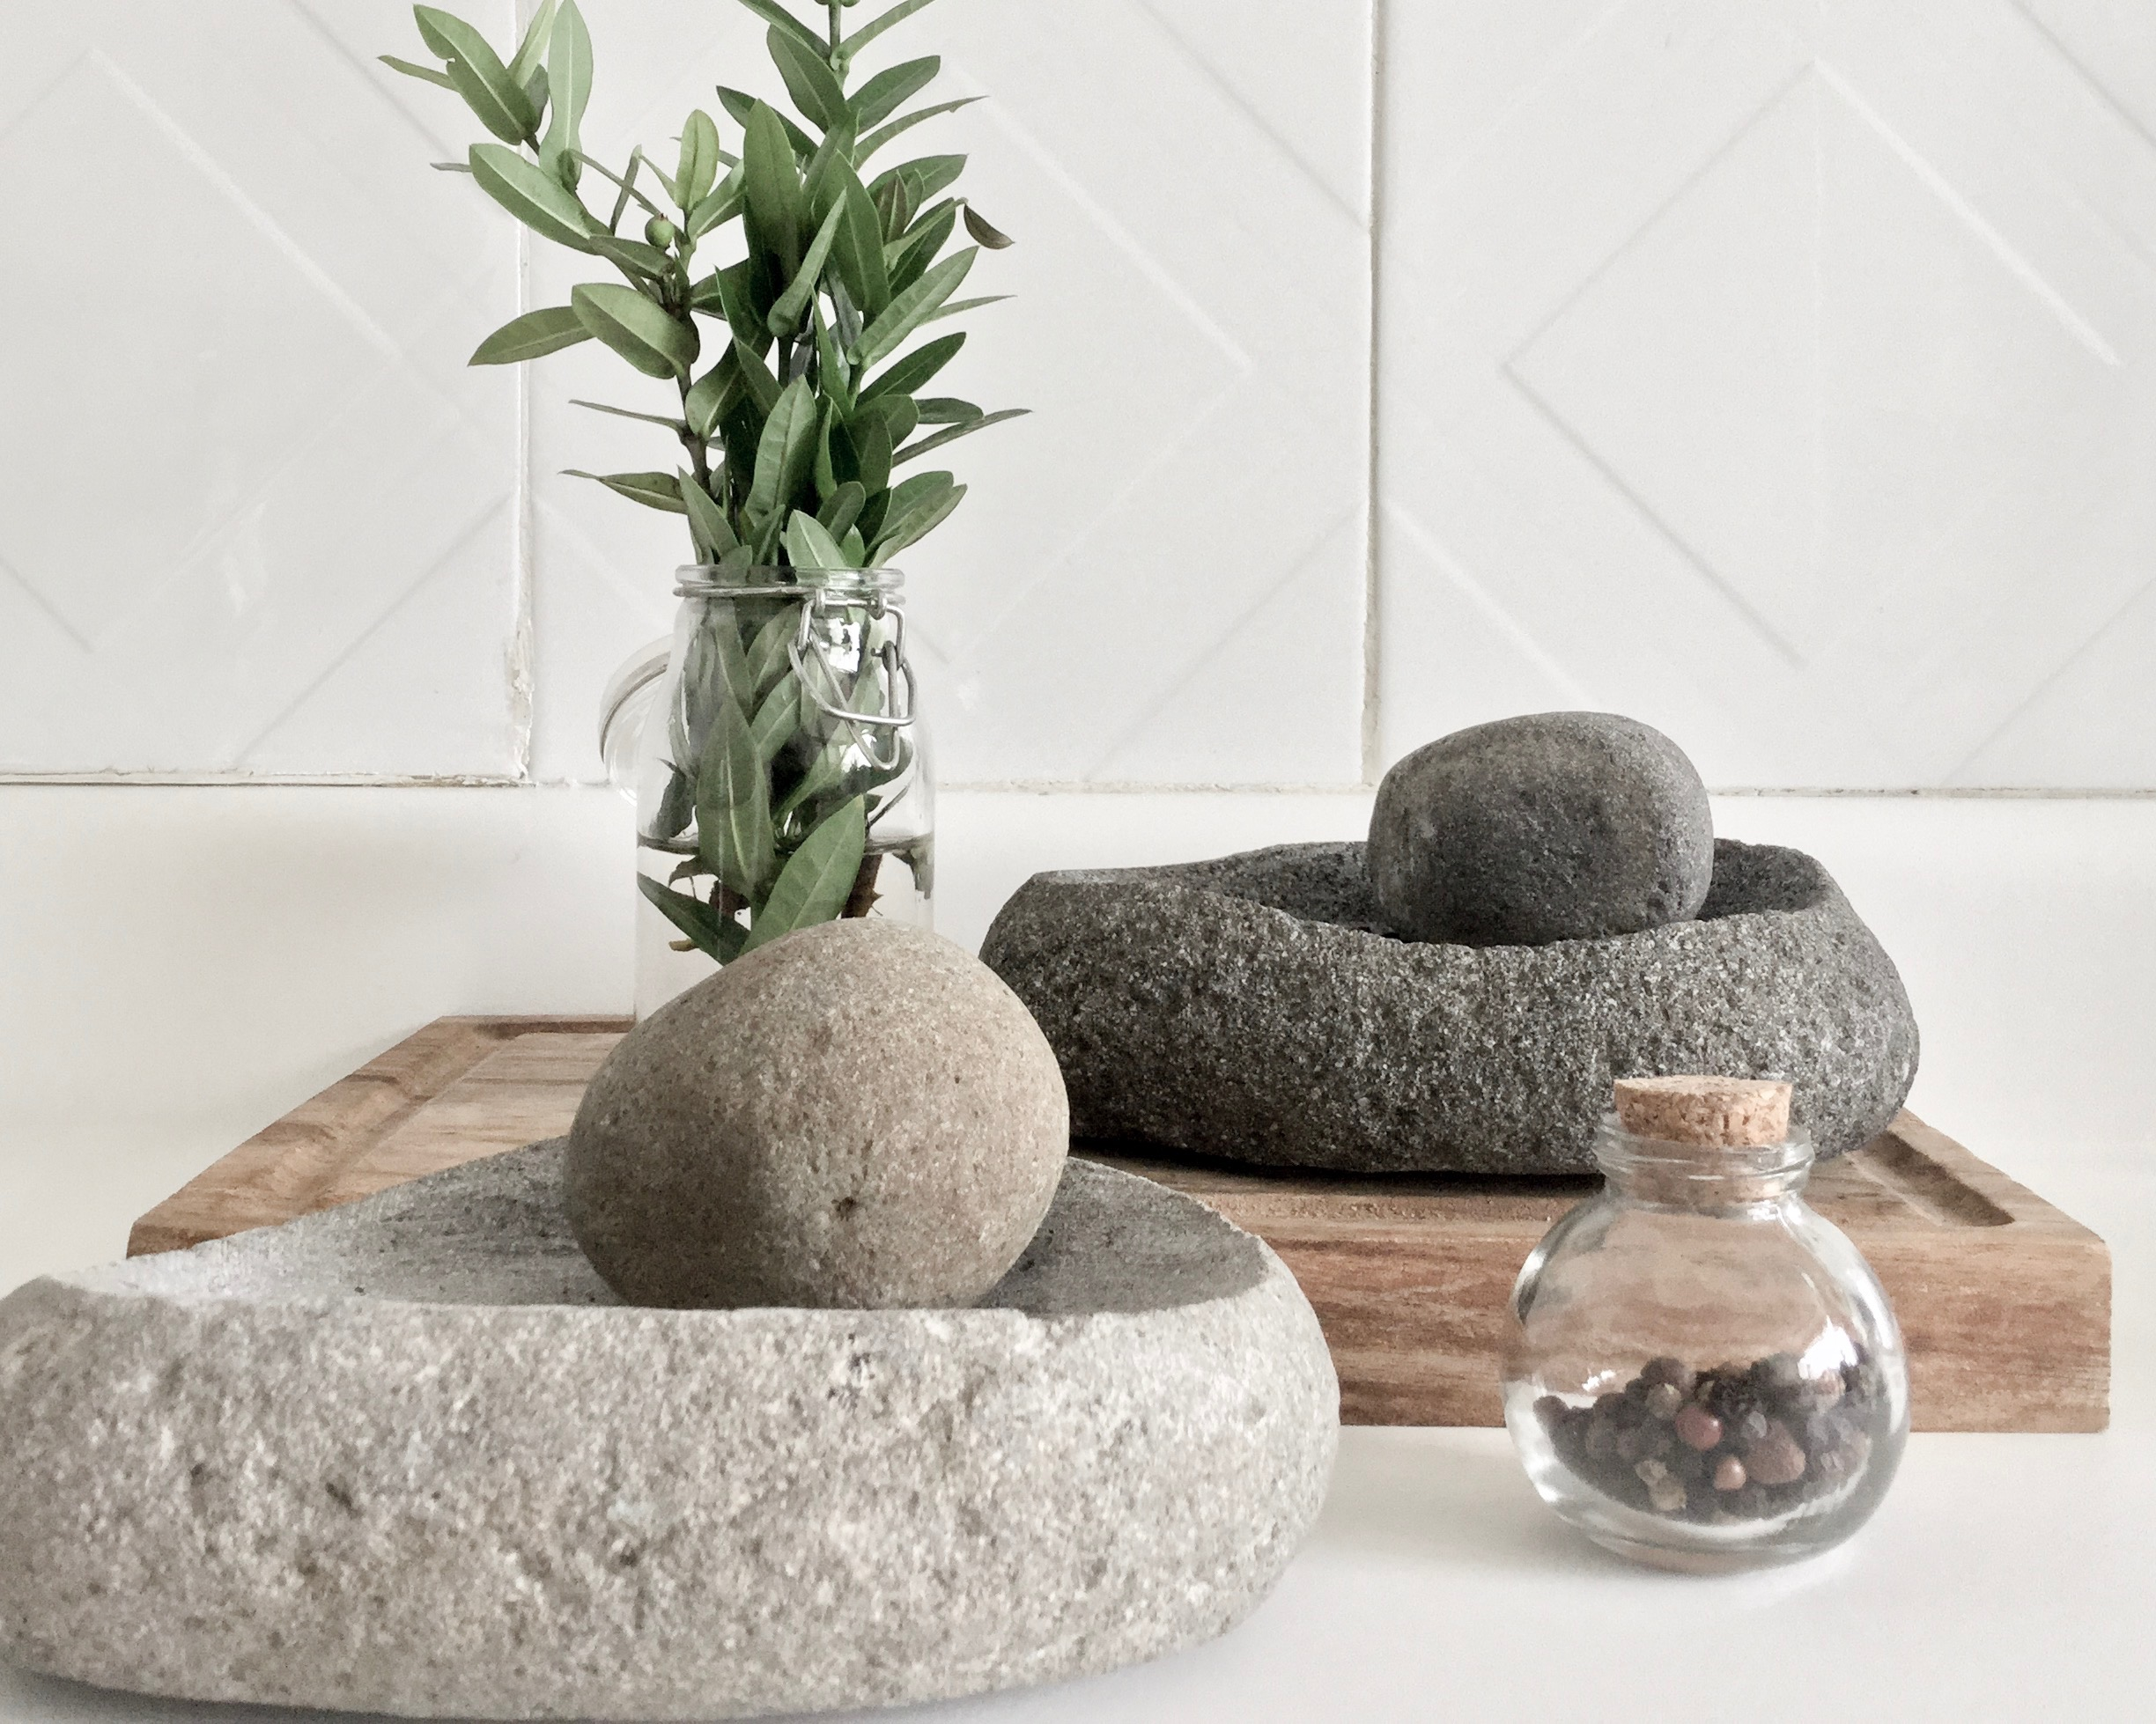 Hand-carved river rock pestle and mortar